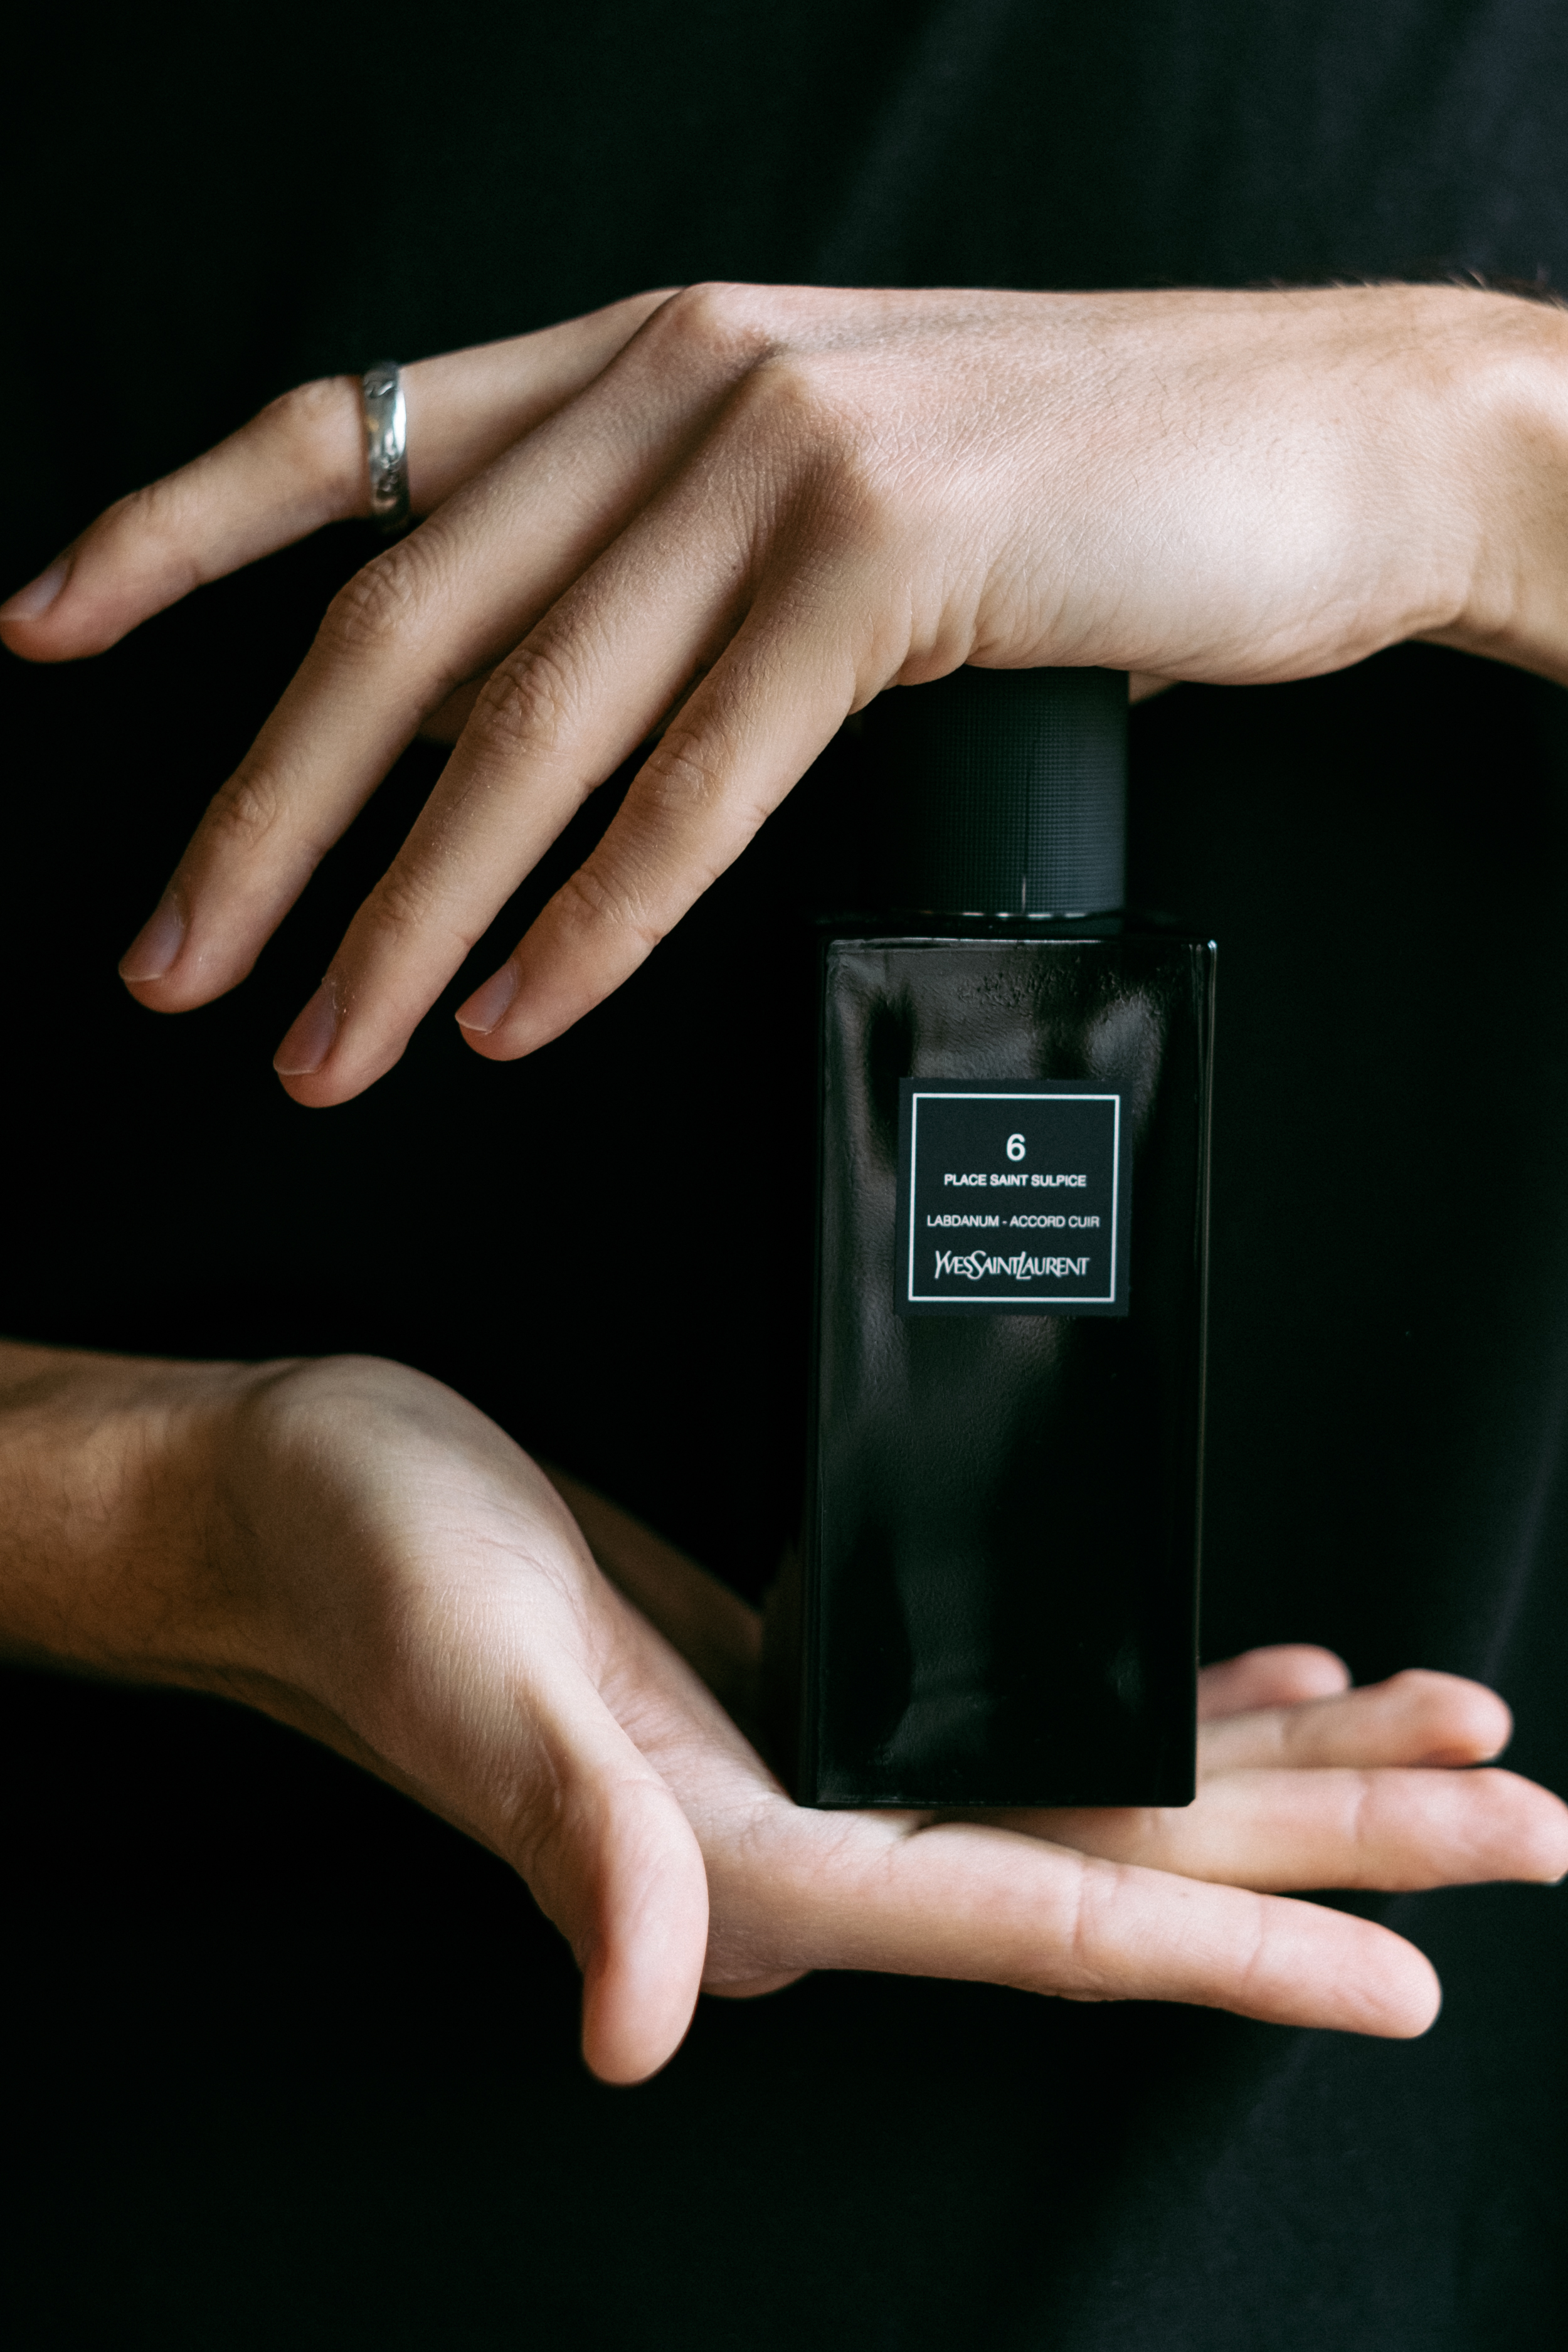 Niche perfume  6 Place Saint Sulpice  by  Yves Saint Laurent  is perfect for dank days. The fragrance opens with a light bouquet of lavender and bergamot, accented by distinct yet intriguing notes of saffron, leather and oriental spices.